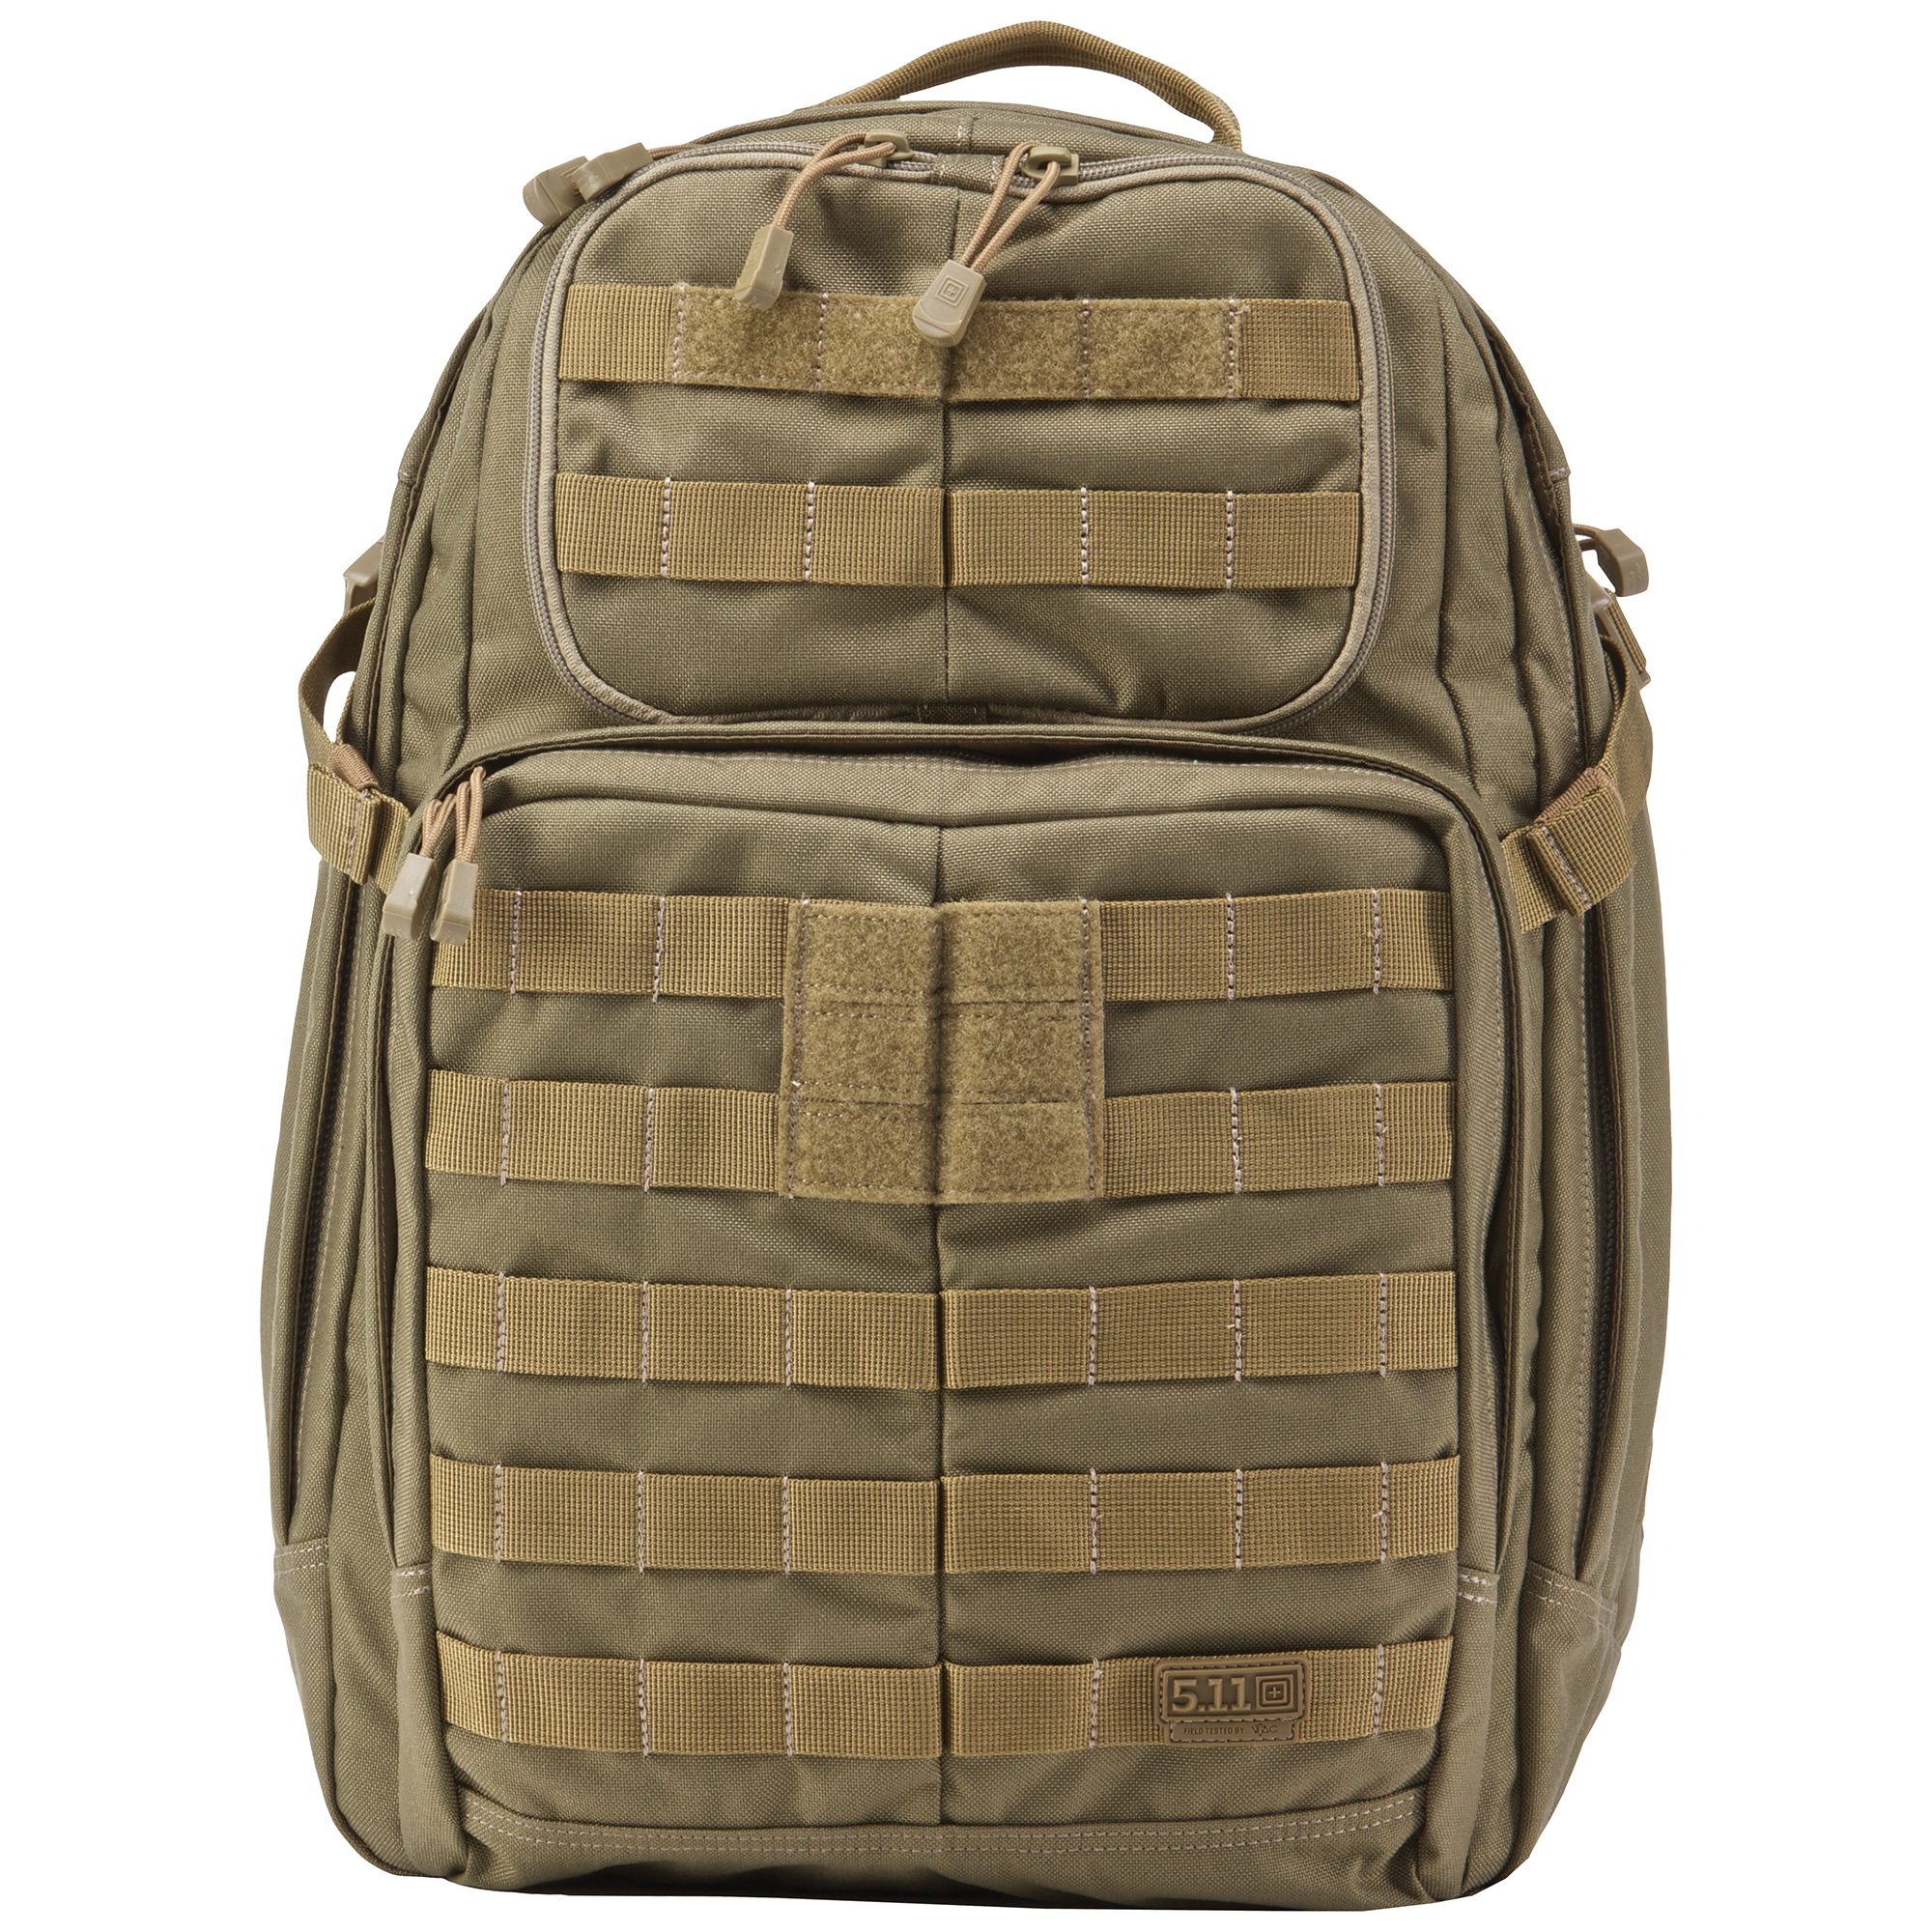 5.11 Tactical RUSH24 Backpack, Sandstone thumbnail